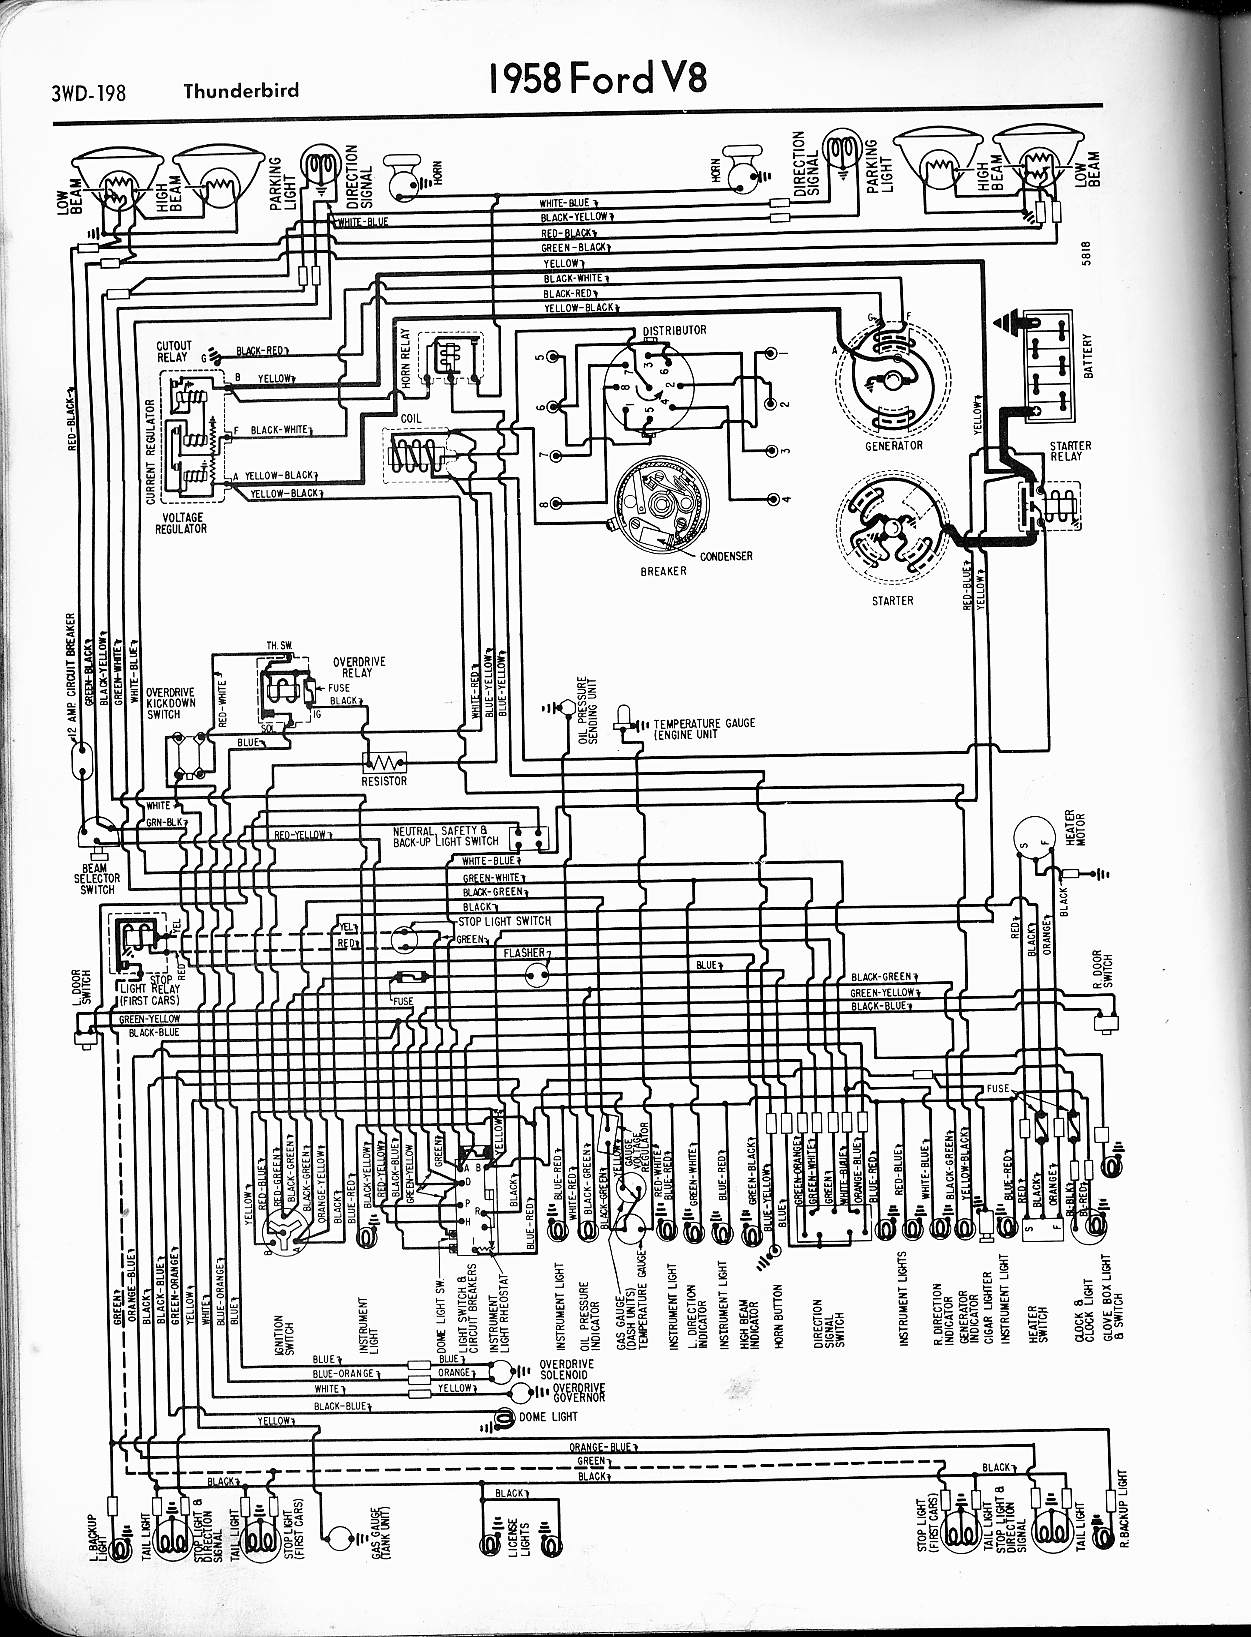 1977 Corvette Power Window Wiring Diagram Opinions About Jeep Wrangler Vacuum Free Download Schematic 1957 Ford Harness Schematics Rh Mychampagnedaze Com 82